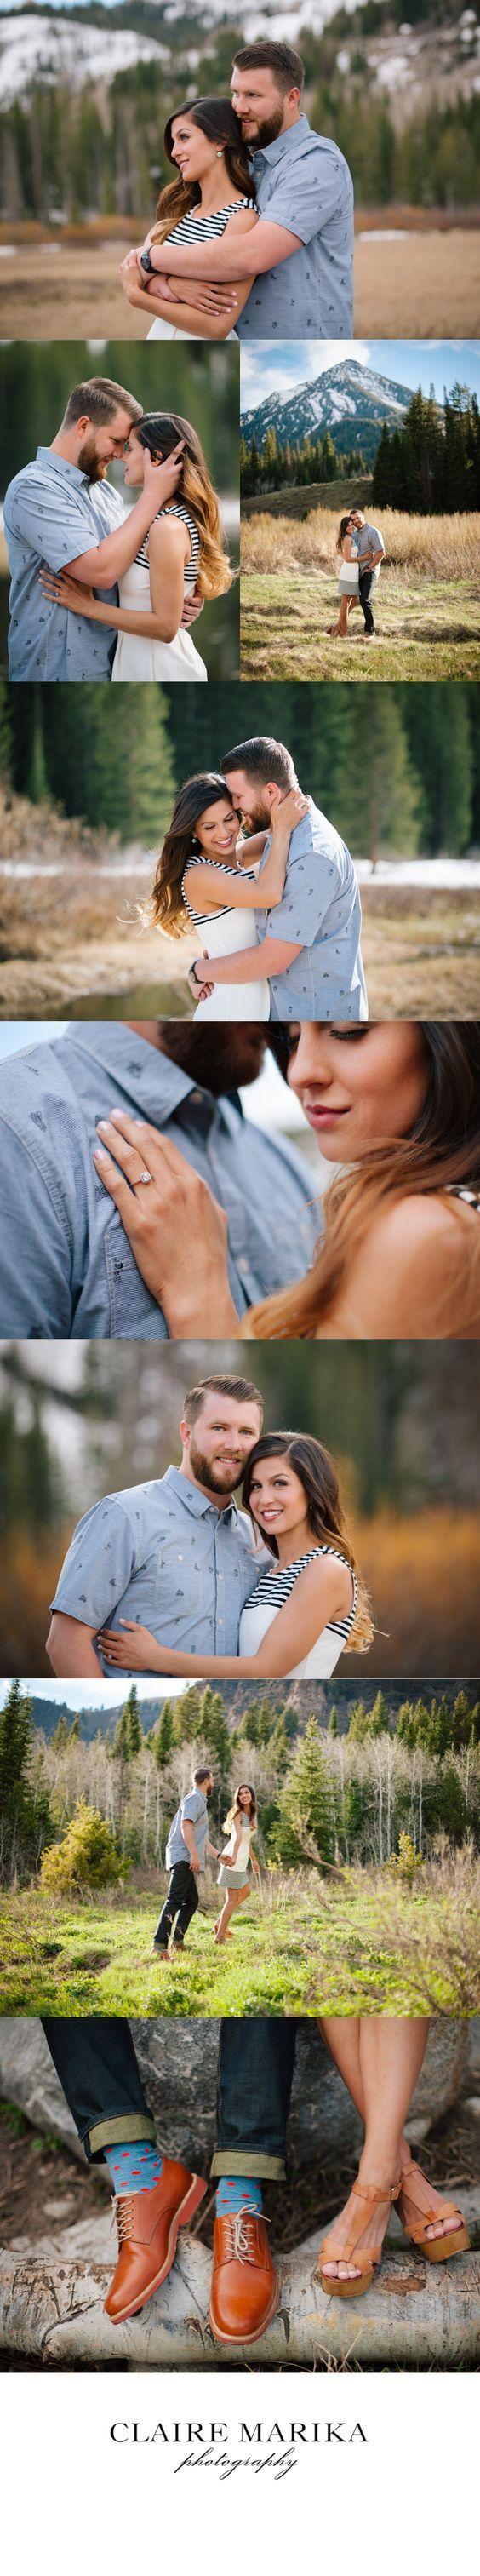 Sweet engagement photos camaras pinterest engagement couples